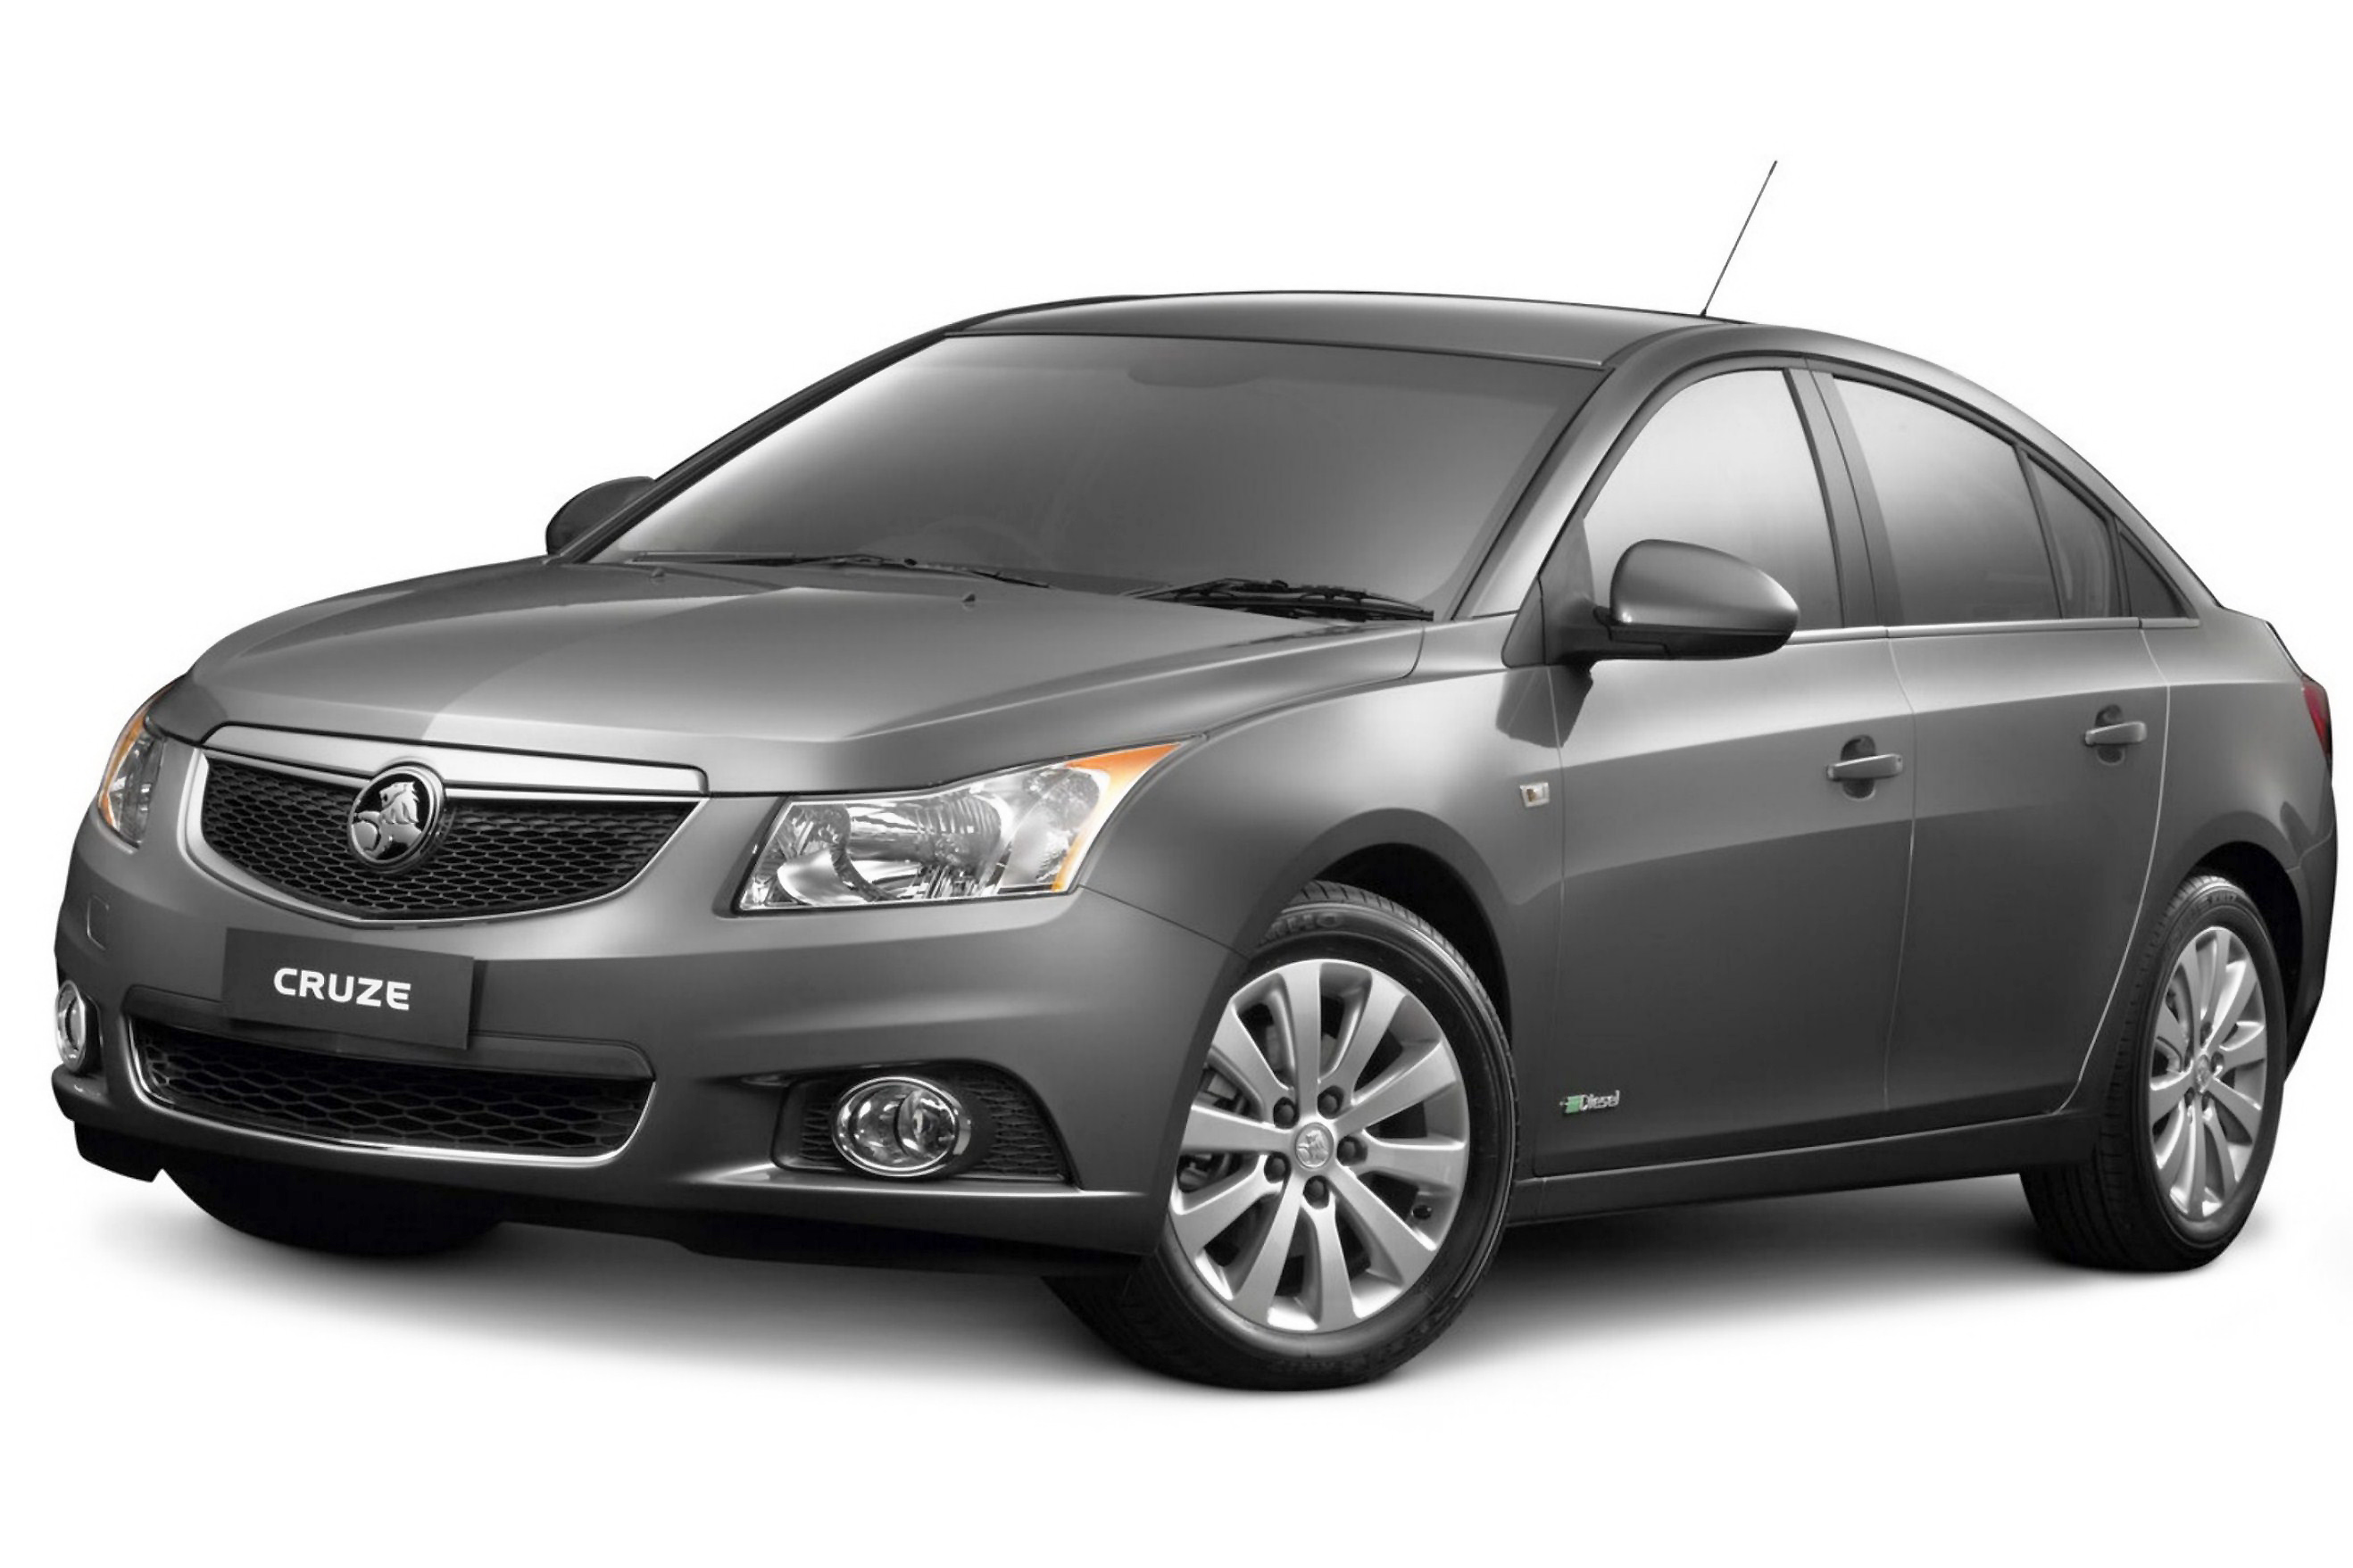 Holden Cruze Reviews And Cruz Discount Pricing Private Fleet